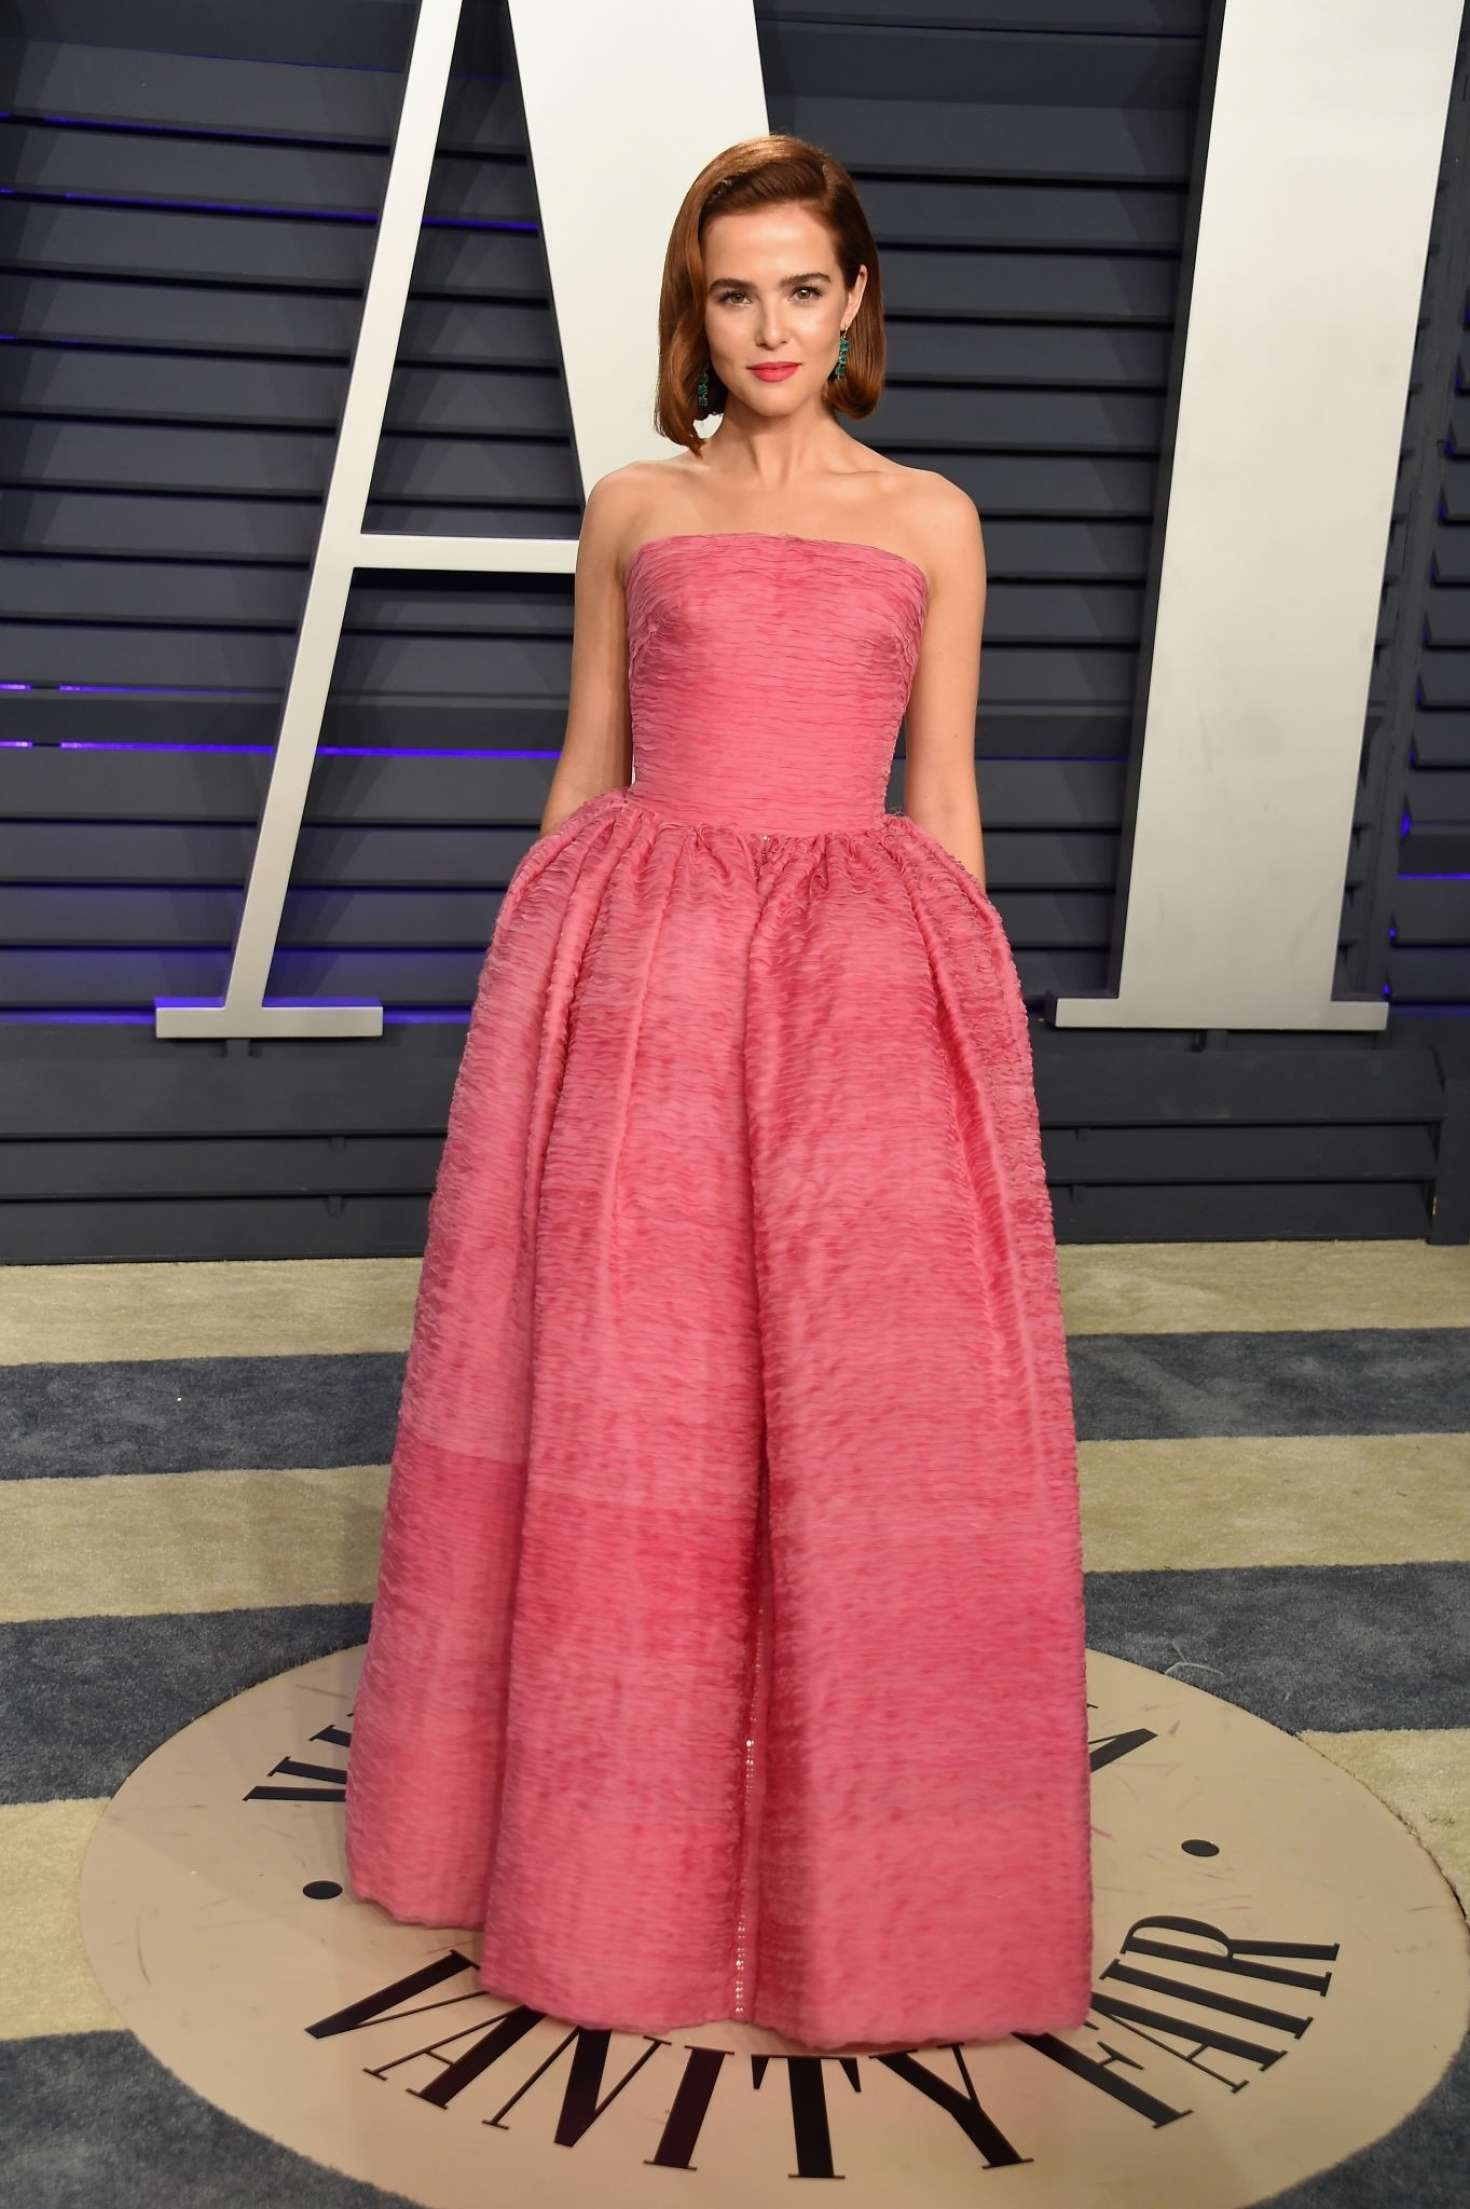 Zoey Deutch 2019 : Zoey Deutch: 2019 Vanity Fair Oscar Party -04